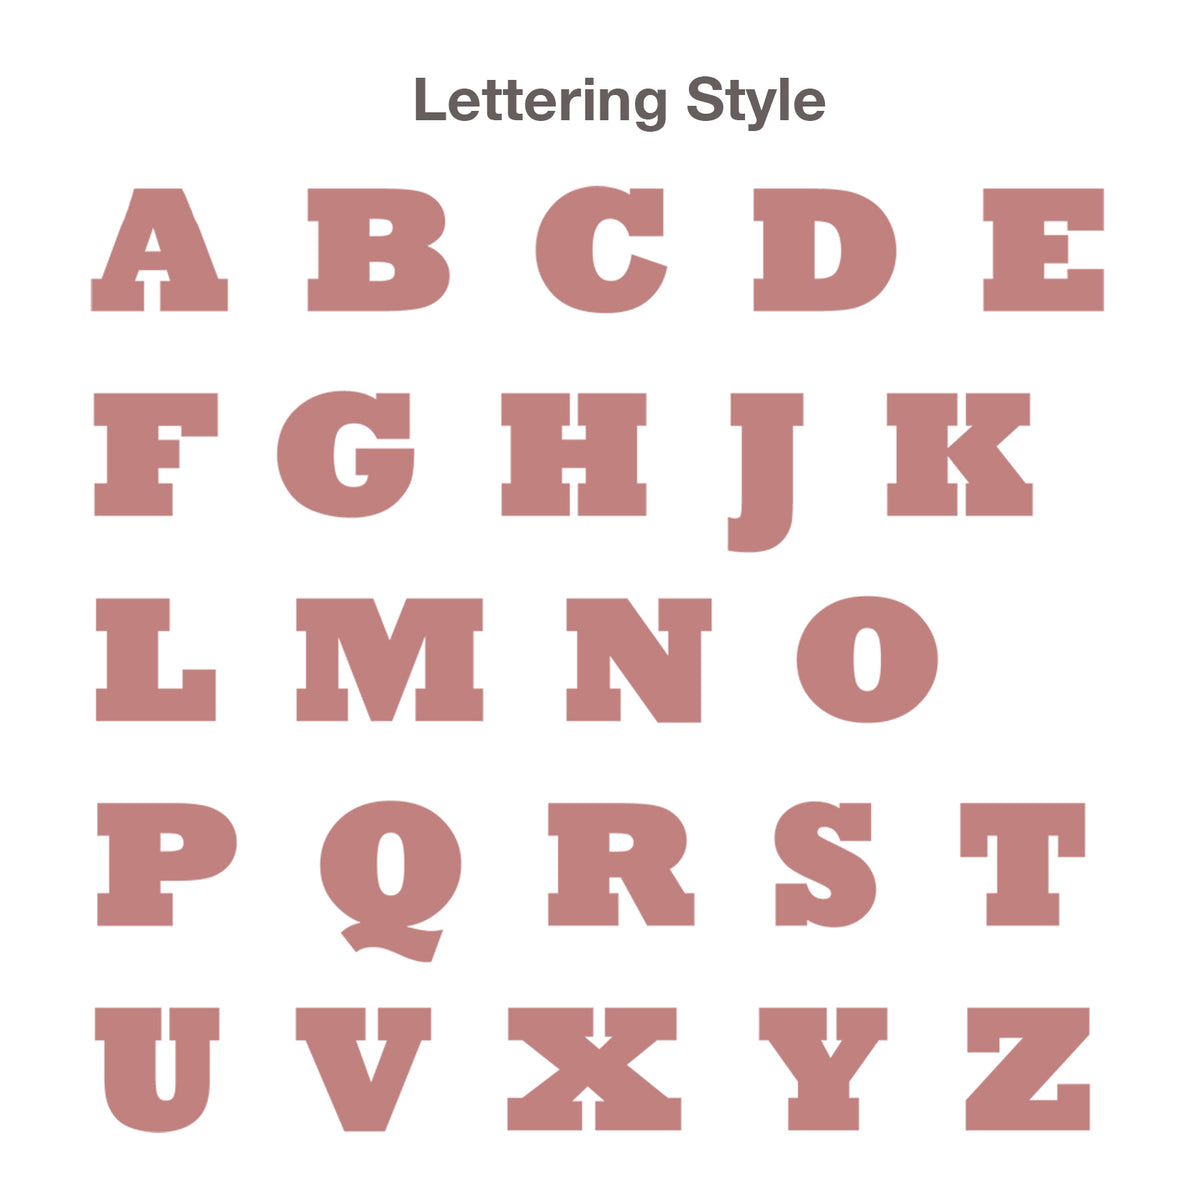 Lettering style chart.